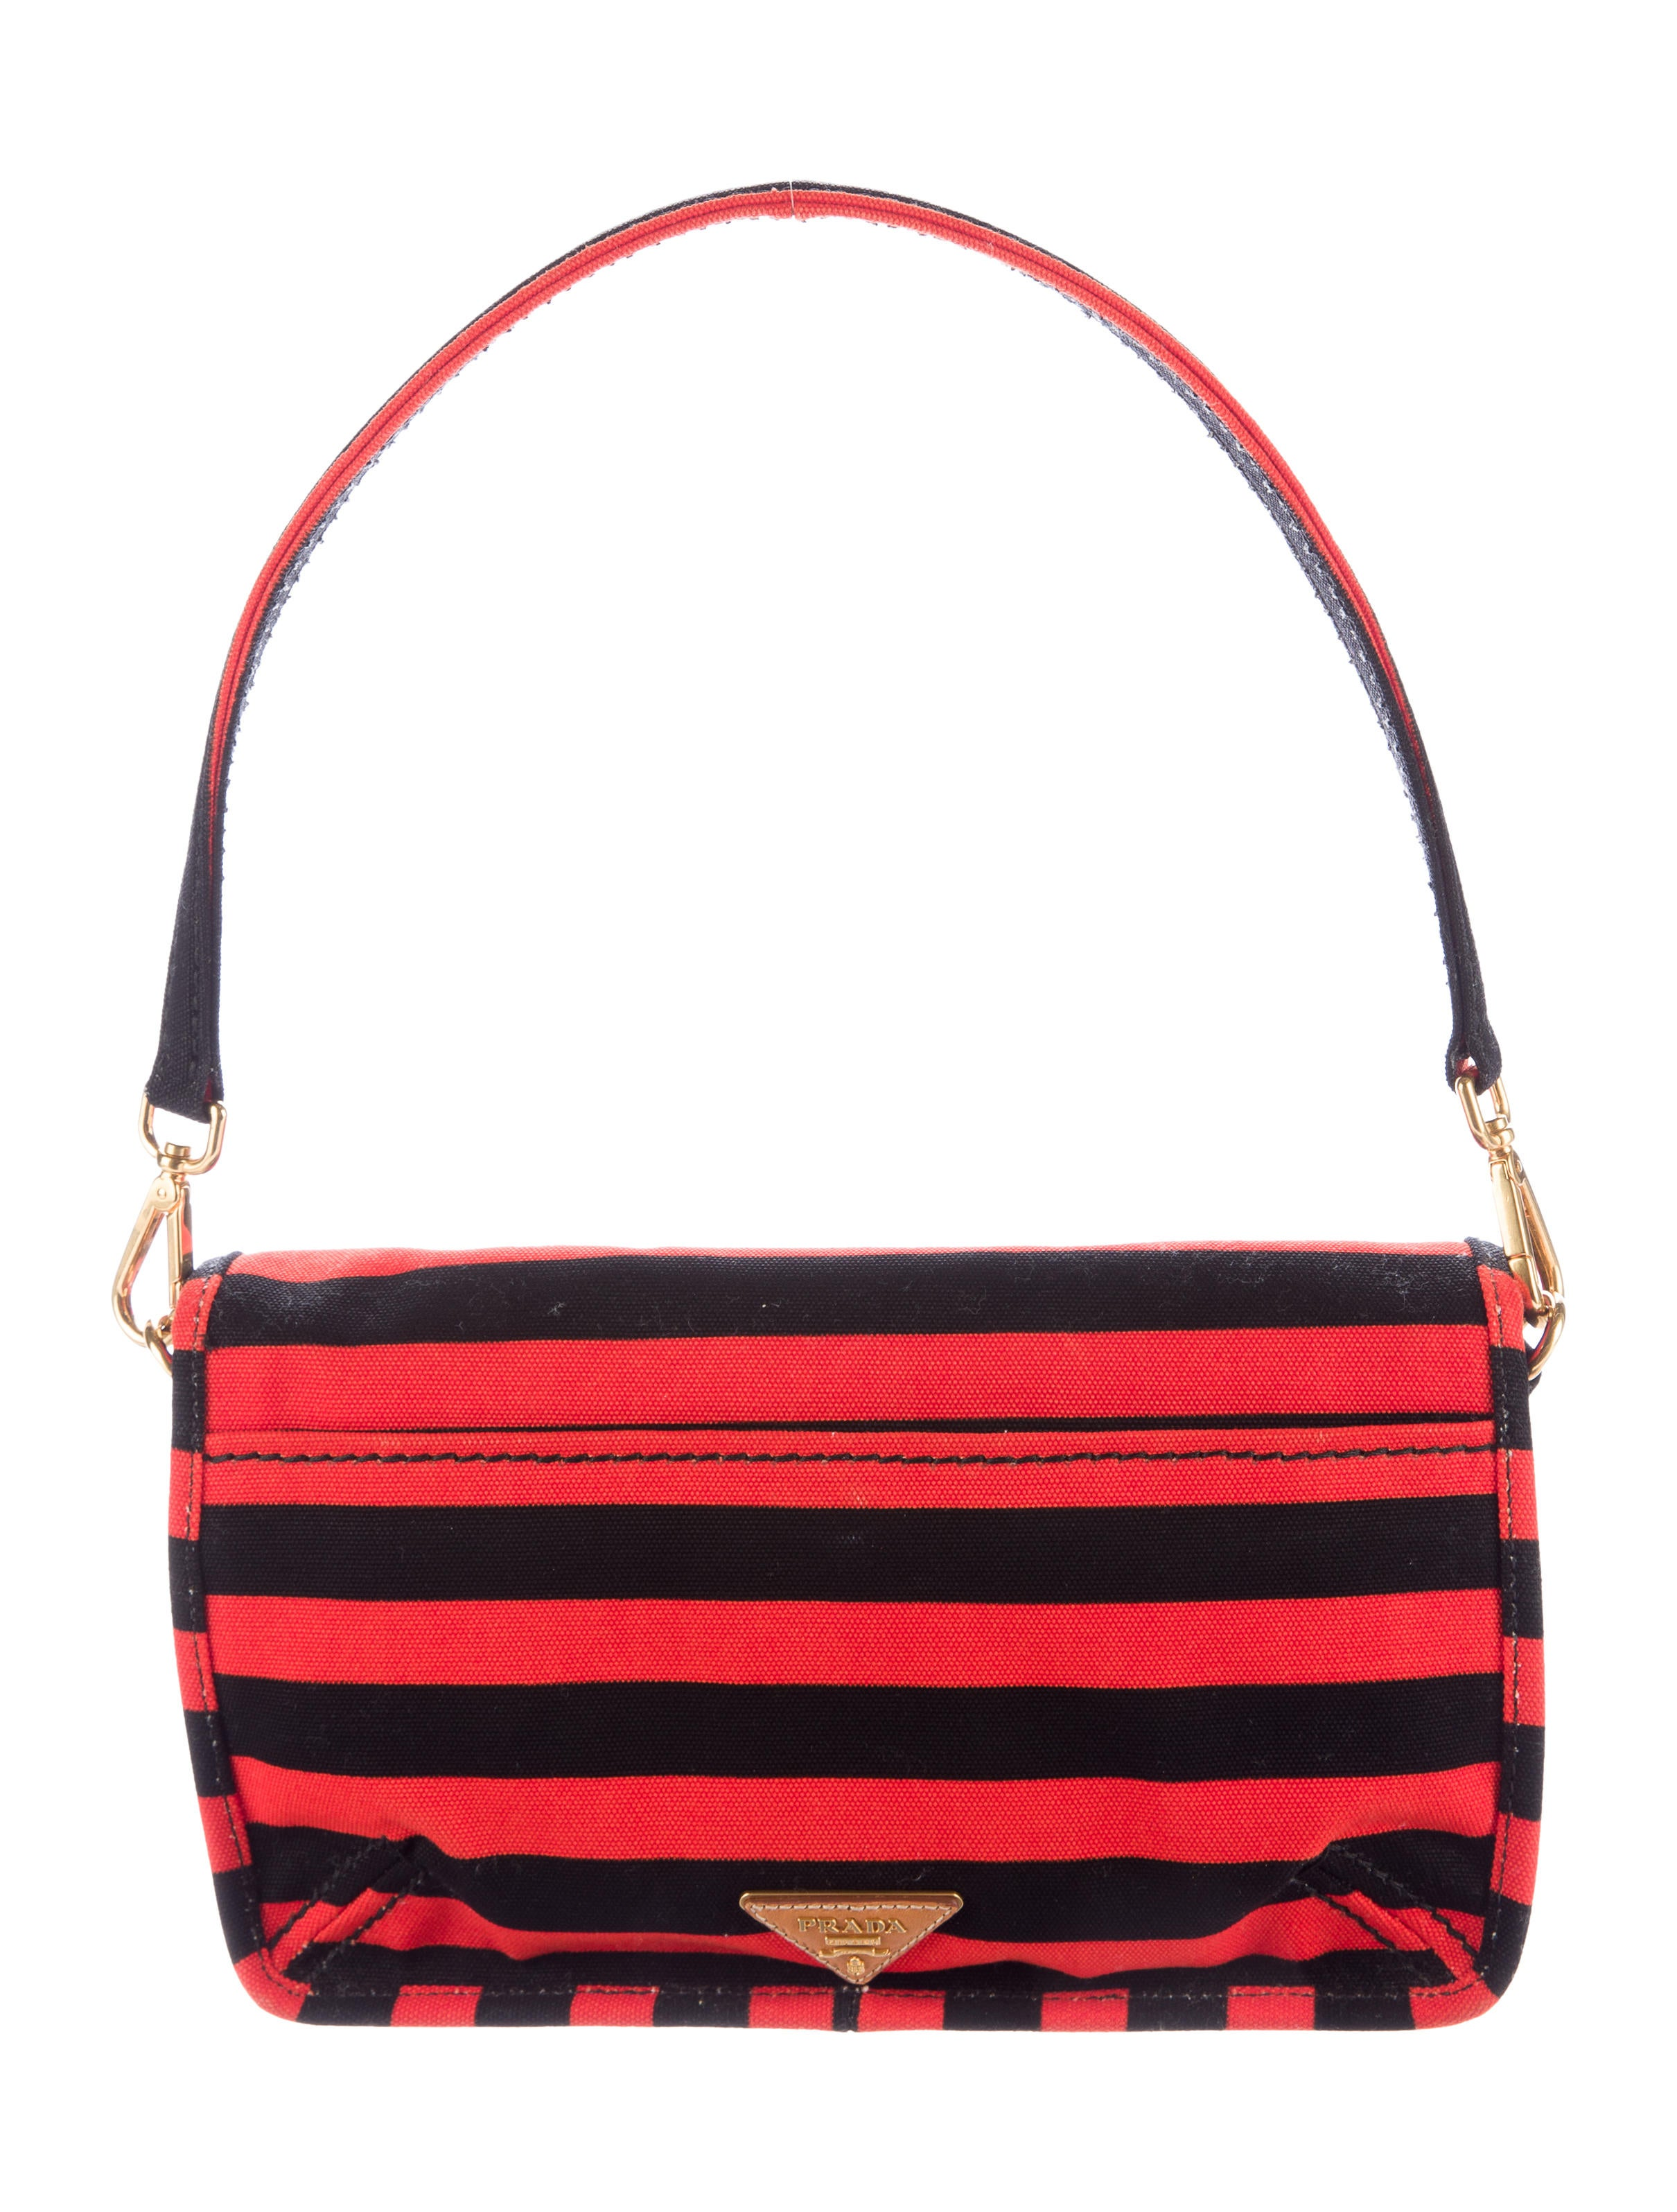 0f76a9c1a37976 Prada Striped Bag Strap | Stanford Center for Opportunity Policy in ...